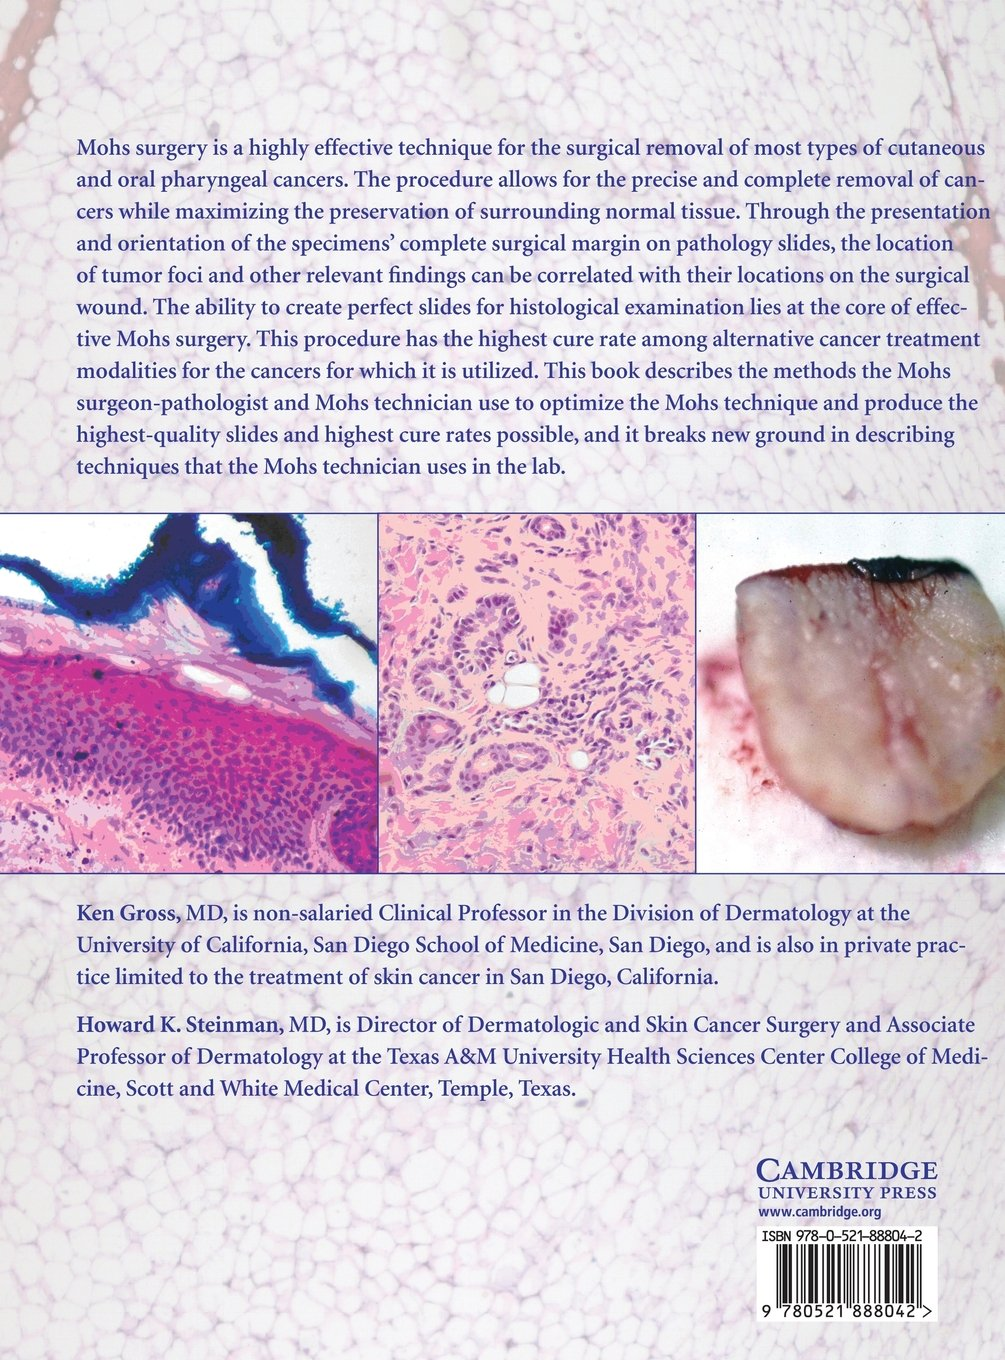 hpv-positive oropharyngeal cancer treatment